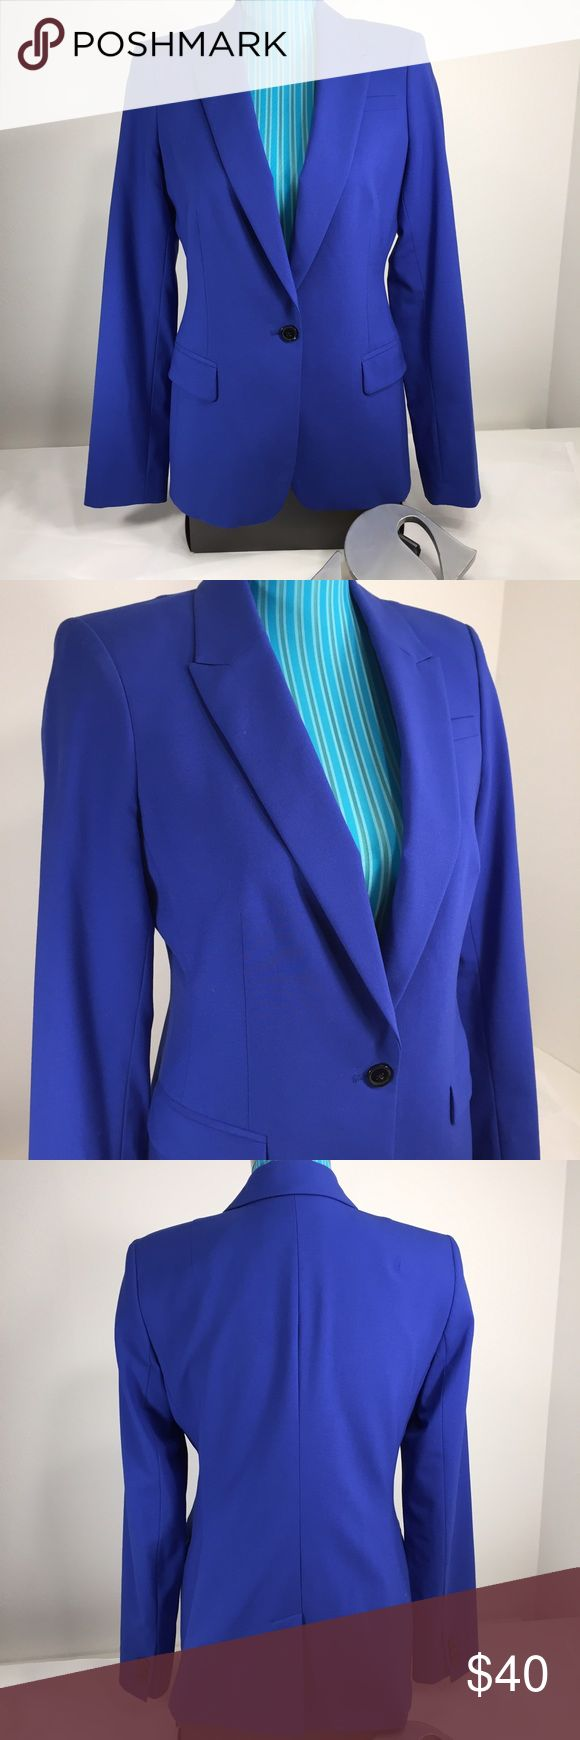 🆕Banana Republic Royal blue blazer size 8 In excellent used condition. Has two pockets. Shell = 95% wool and 5% spandex. Lining = 109% polyester. Looks great dresses up, or with pair of jeans! Banana Republic Jackets & Coats Blazers